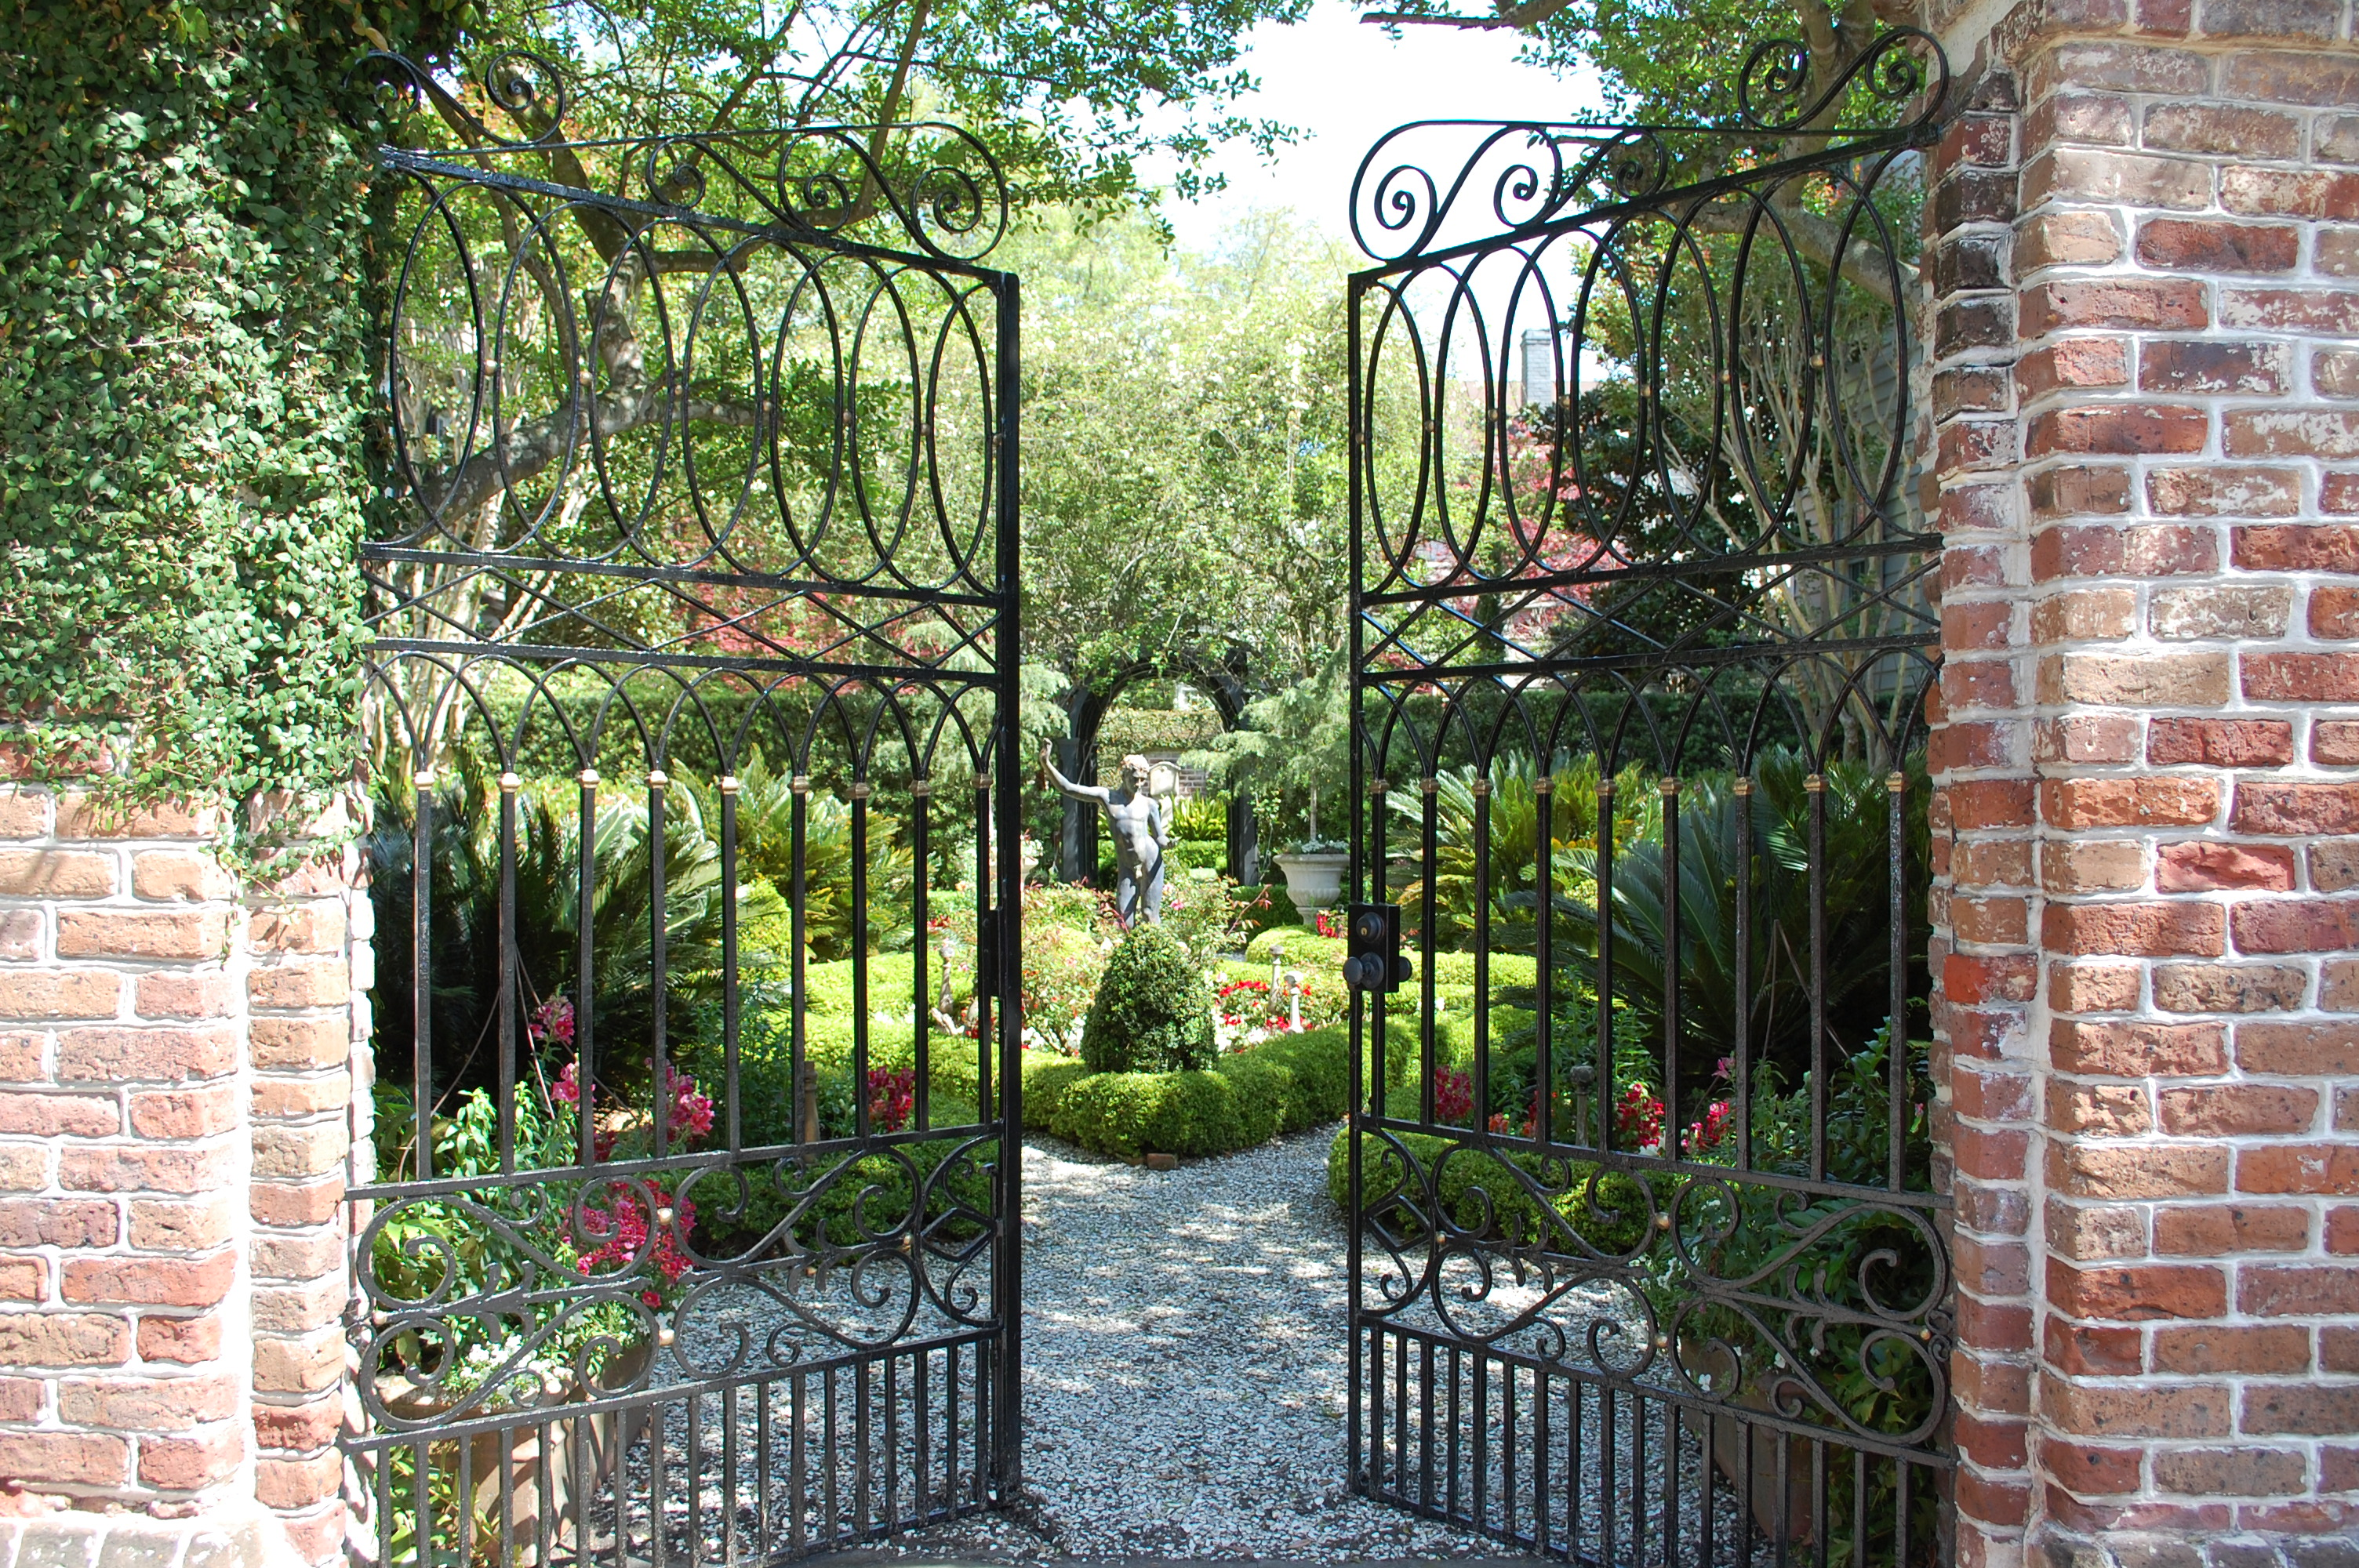 4. Festival of Houses and Gardens, Credit Historic Charleston Foundation